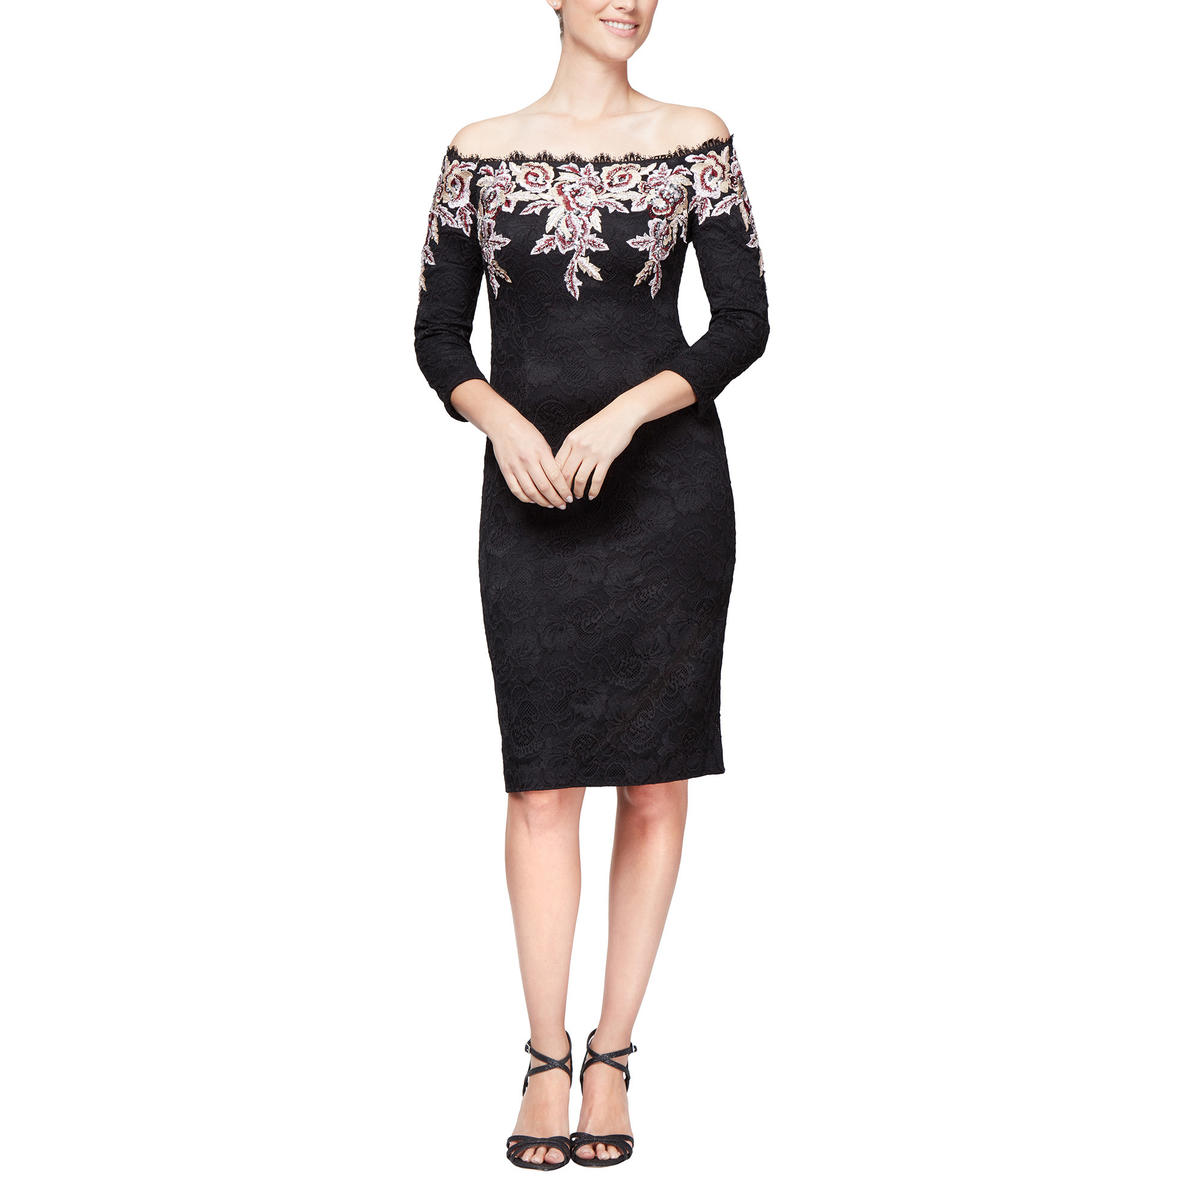 ALEX APPAREL GROUP INC - Embroidered Off-the-Shoulder Cocktail Dress